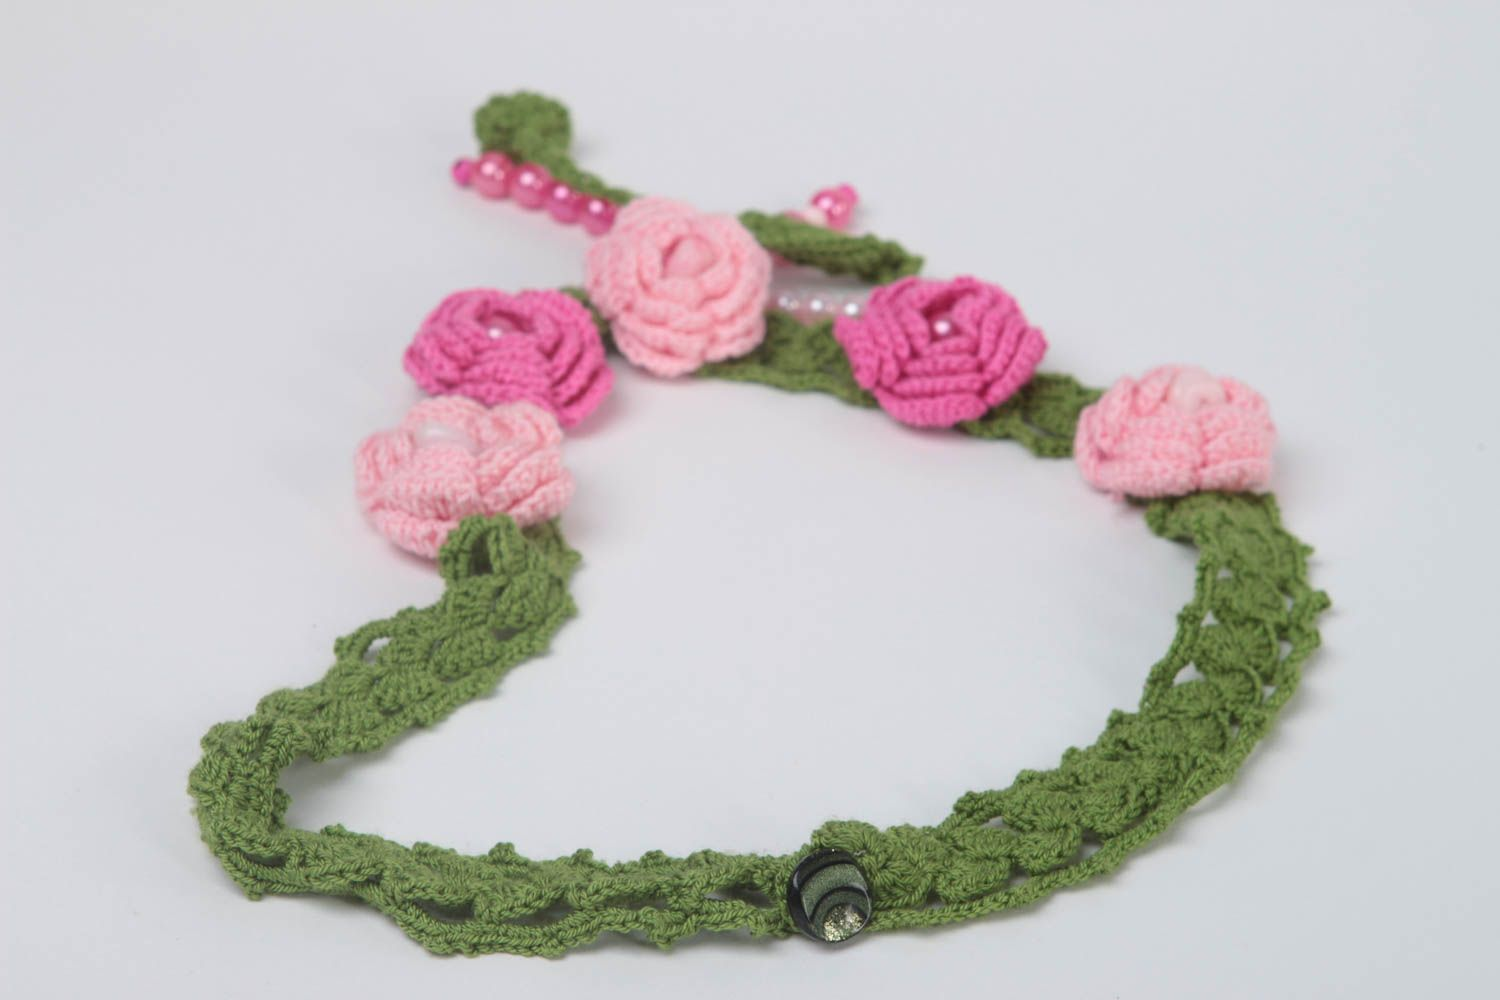 Handmade textile necklace crocheted flower necklace stylish accessory gift photo 4